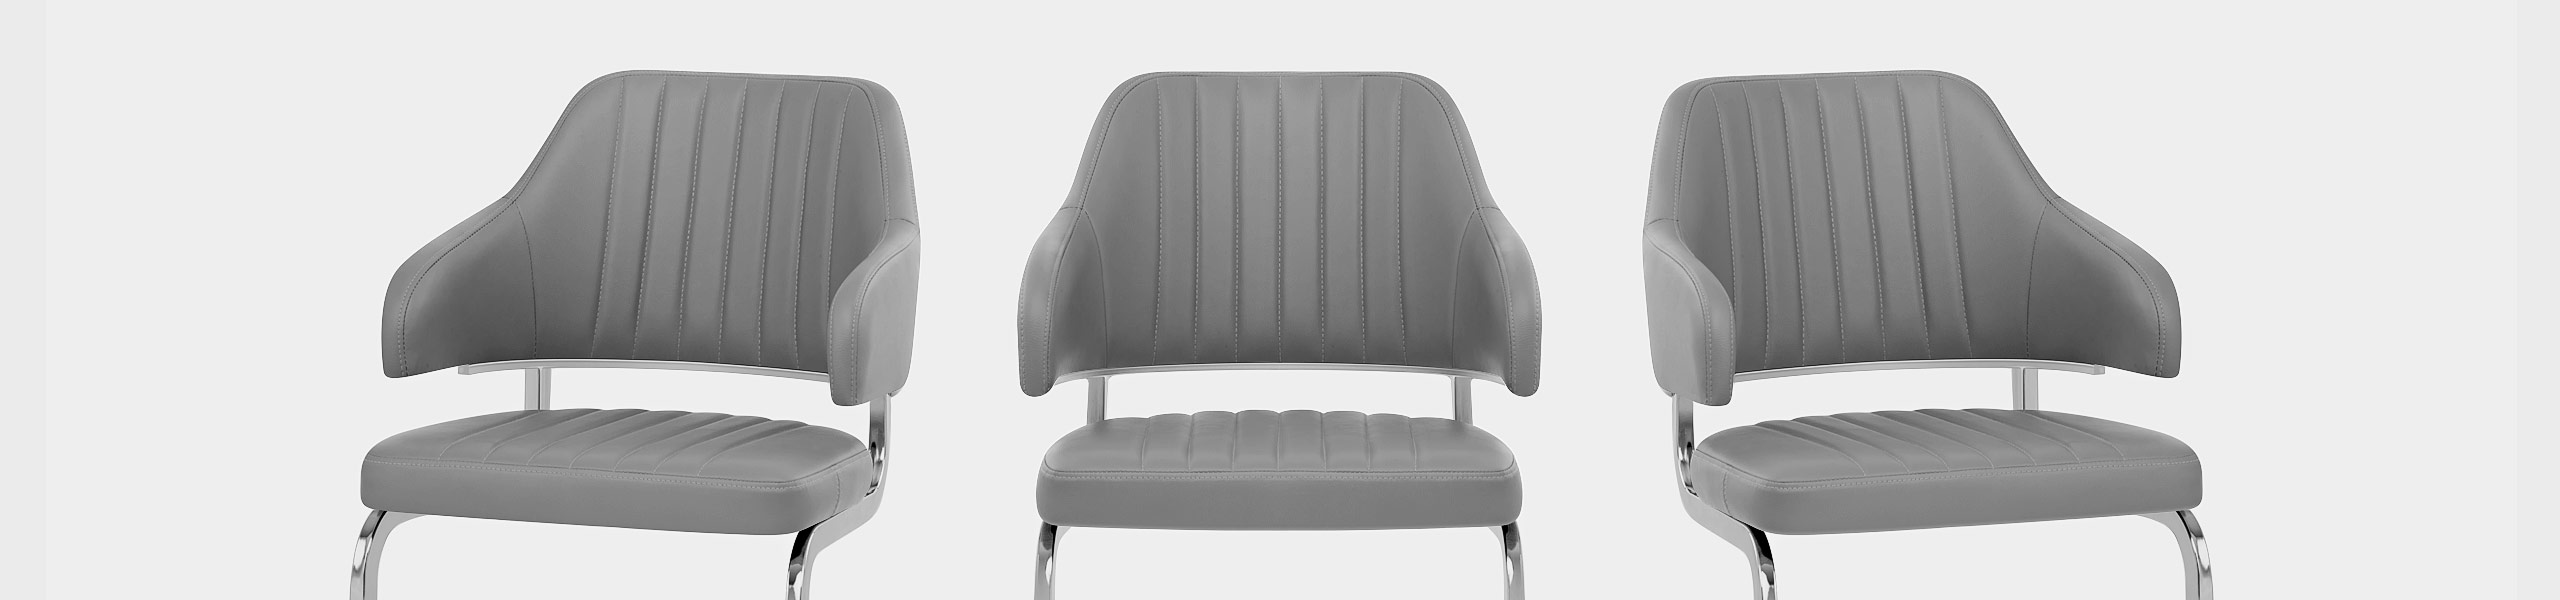 Horizon Chair Grey Leather Video Banner